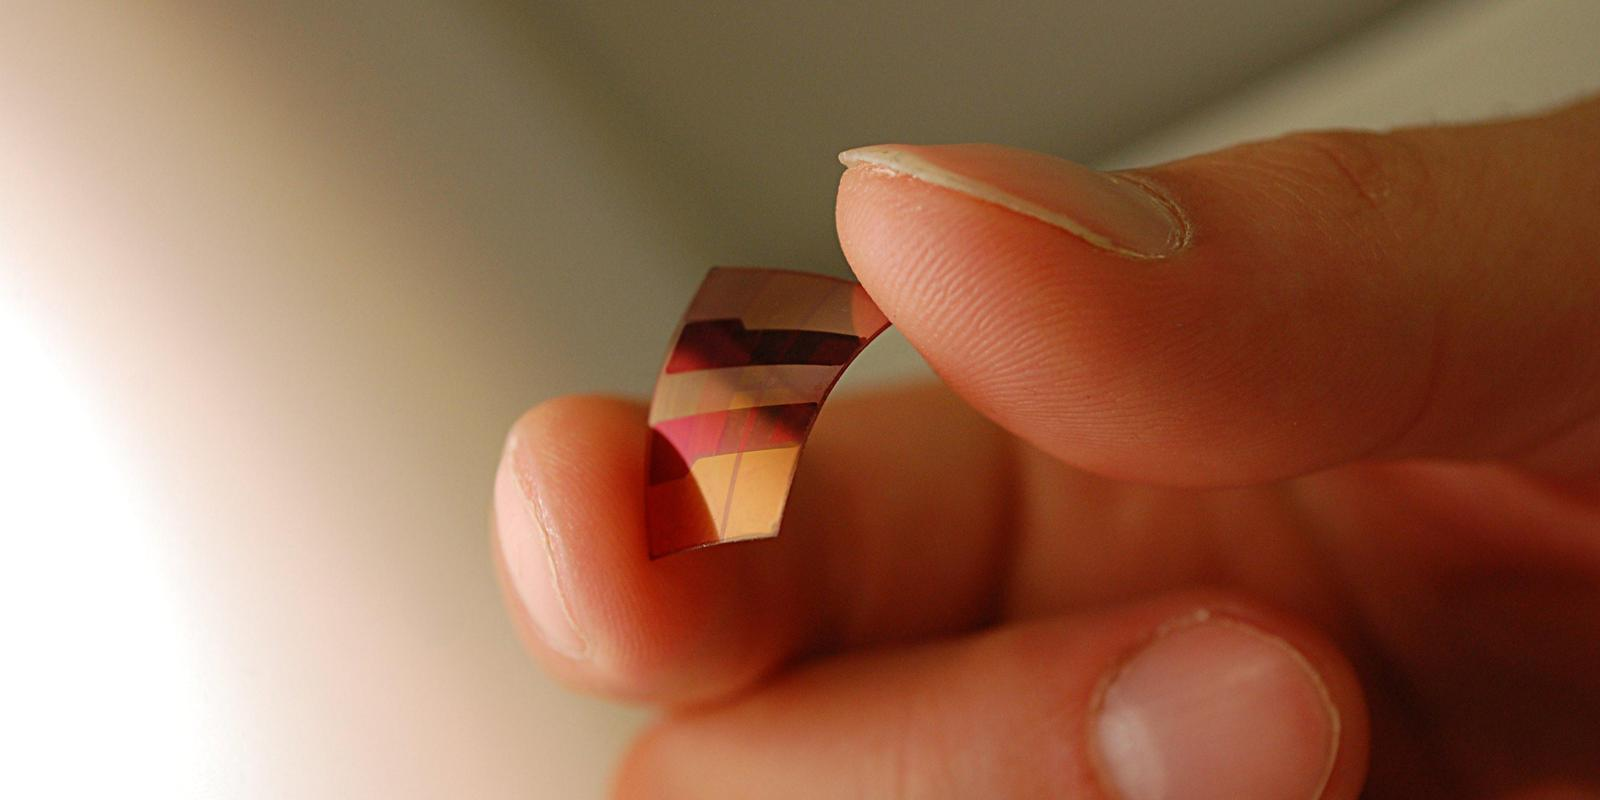 Photograph: Flexible photovoltaics (photo by Lucy Pickford).